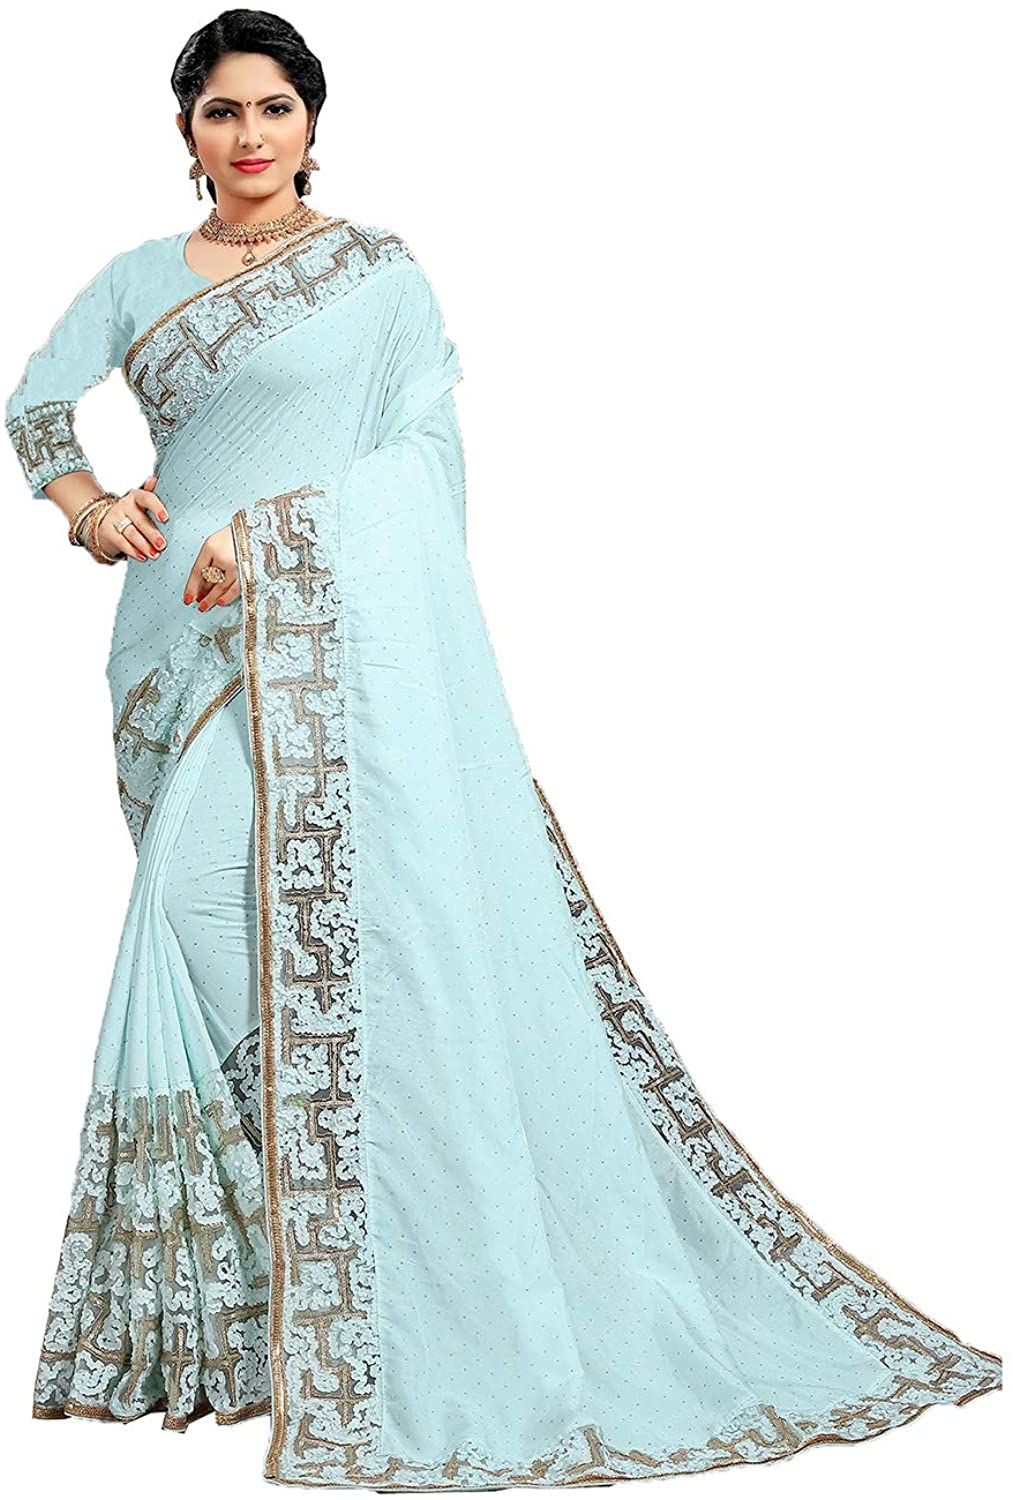 Indian Saree for Women Ethnic Sari Blue Sari with Unstitched Blouse. ICW2843-4